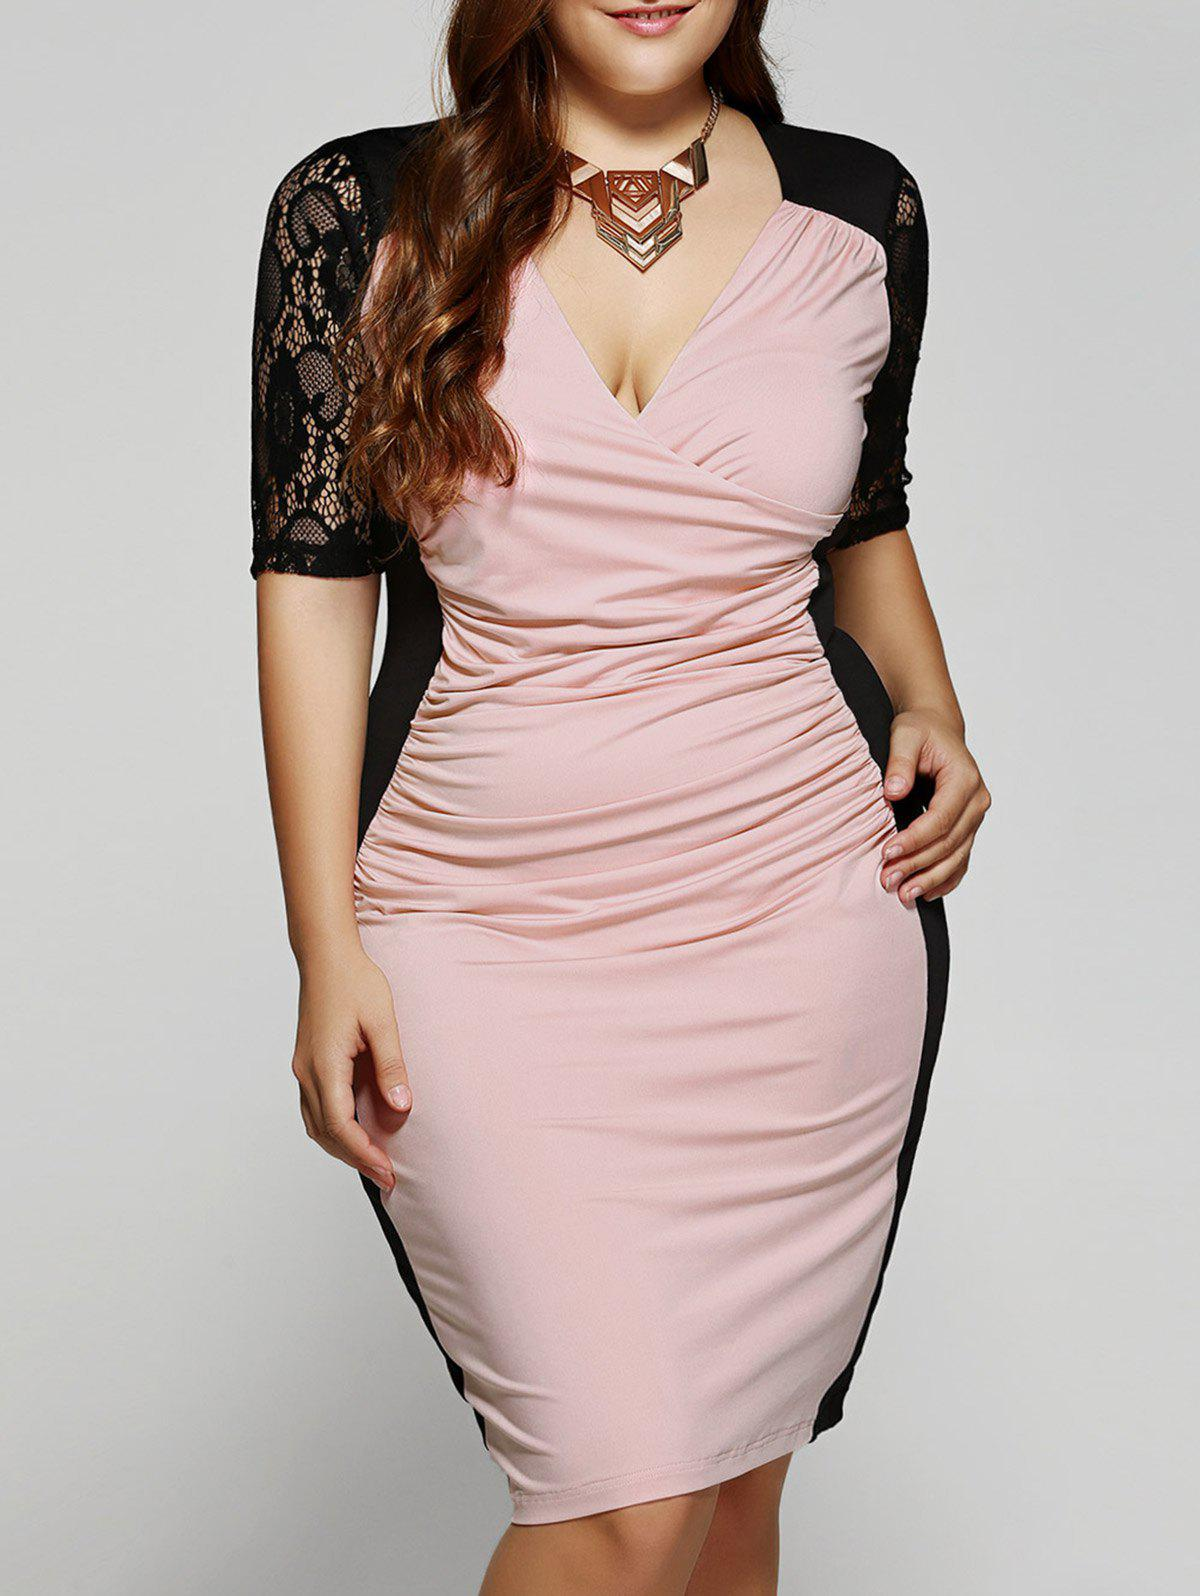 Plus Size 1/2 Sleeves V-Neck Splice Lace Dress - PINK XL